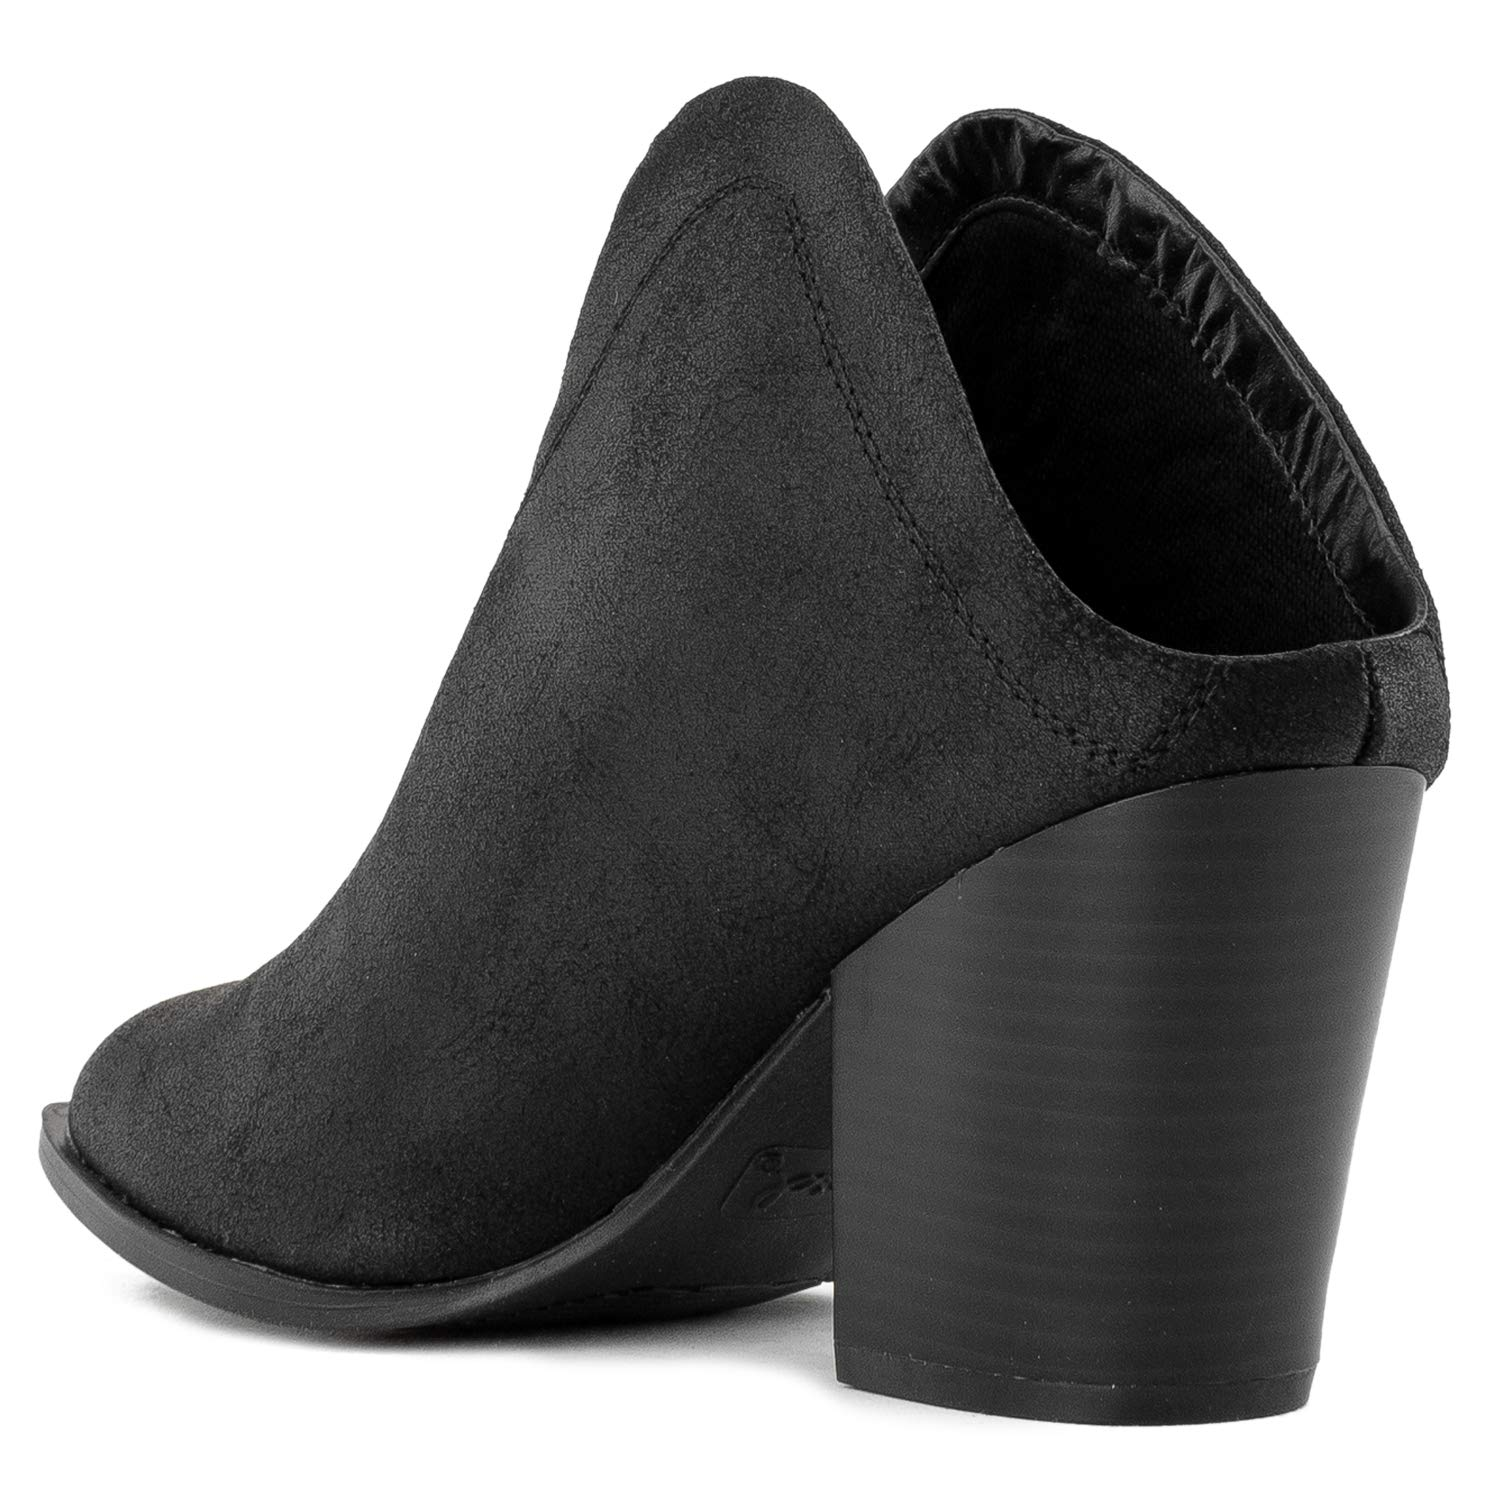 Amazon.com: RF Room of Fashion - Botas de tobillo para mujer ...